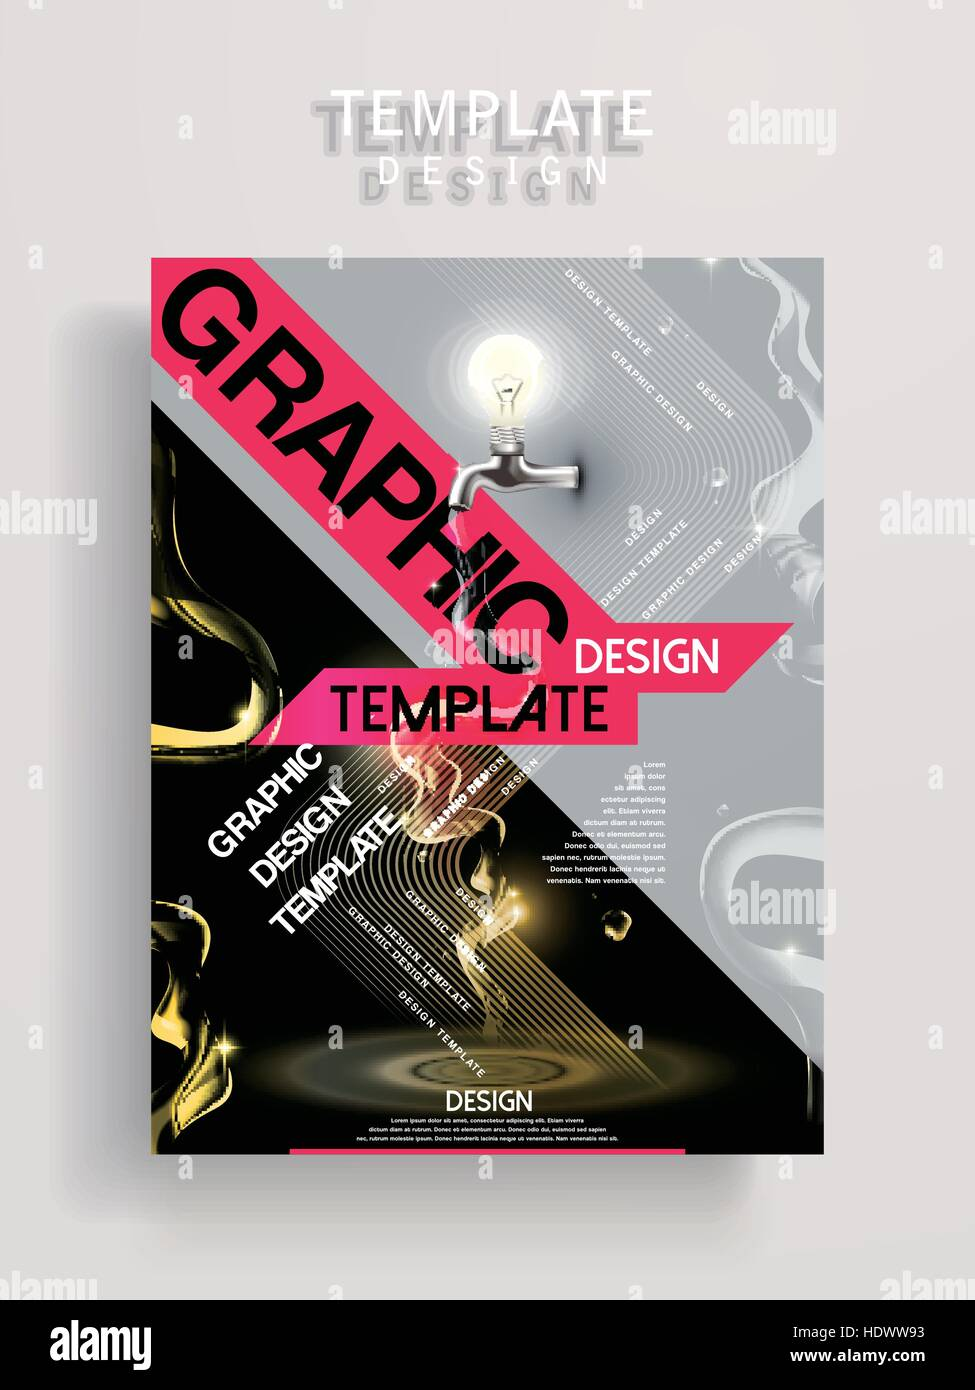 Creative Poster Template Design With Water Tap And Lighting Bulb Stock Vector Image Art Alamy,Wedding Henna Designs